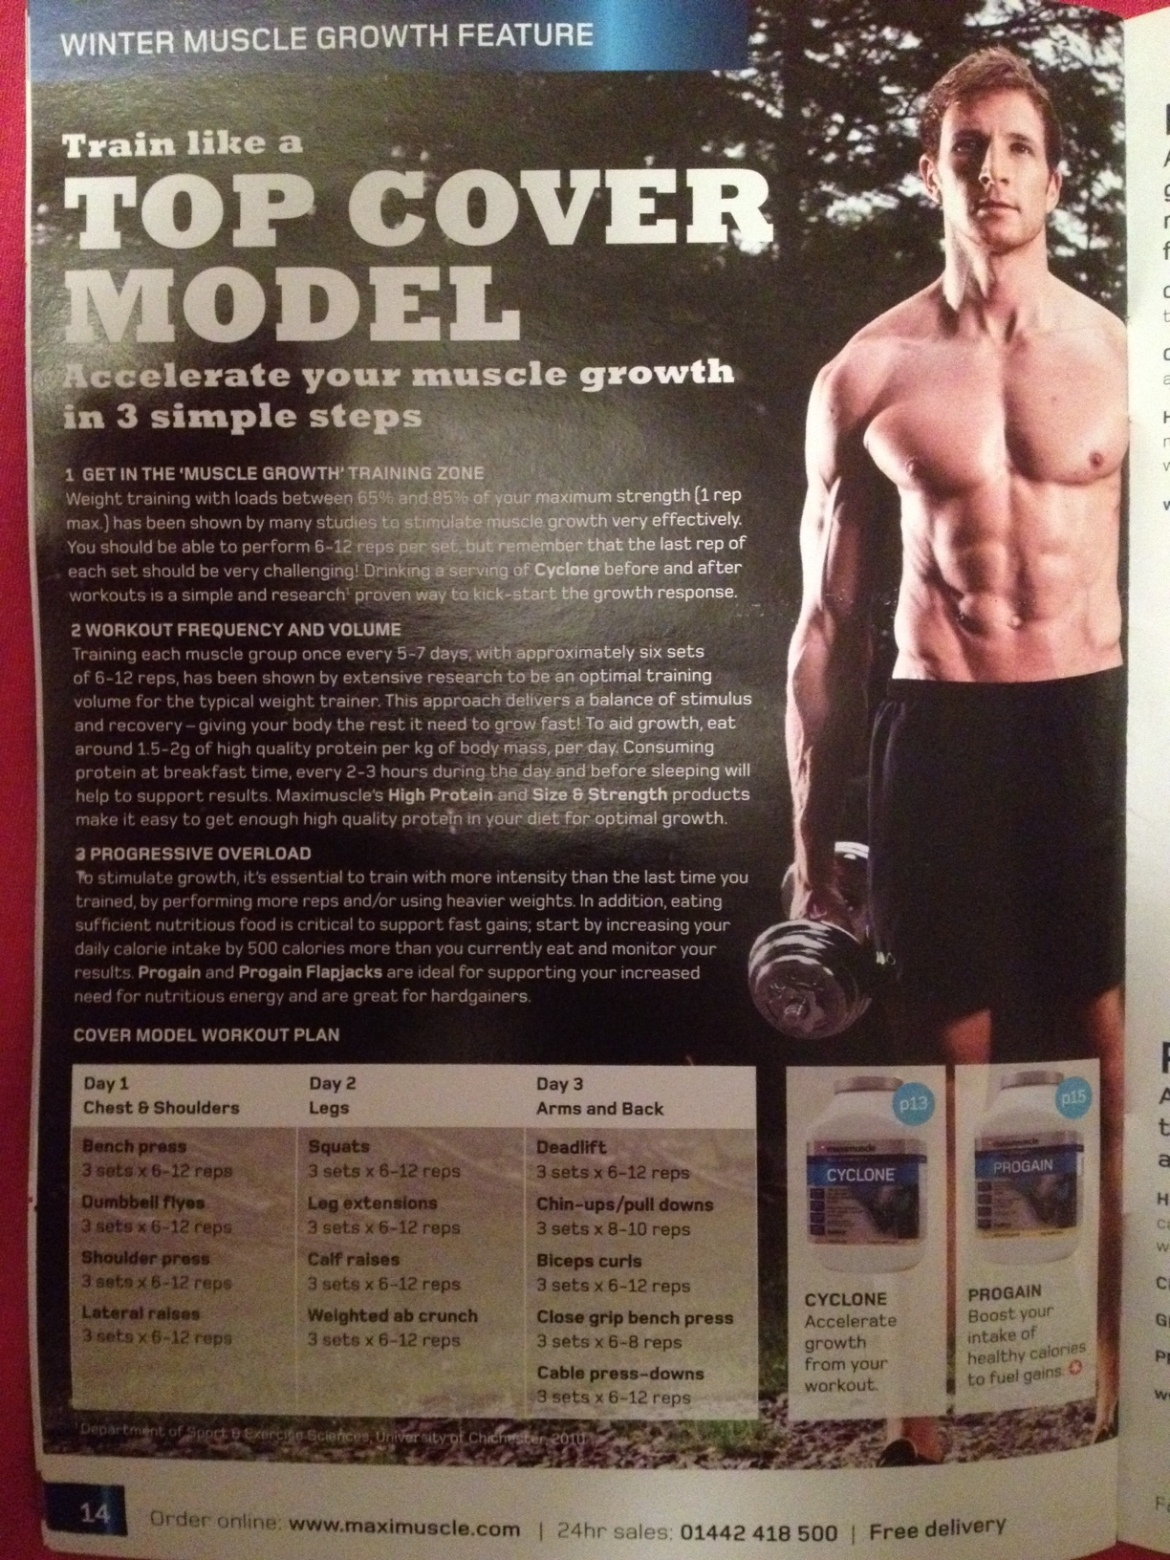 Sean Lerwill's Top Cover Model training programme